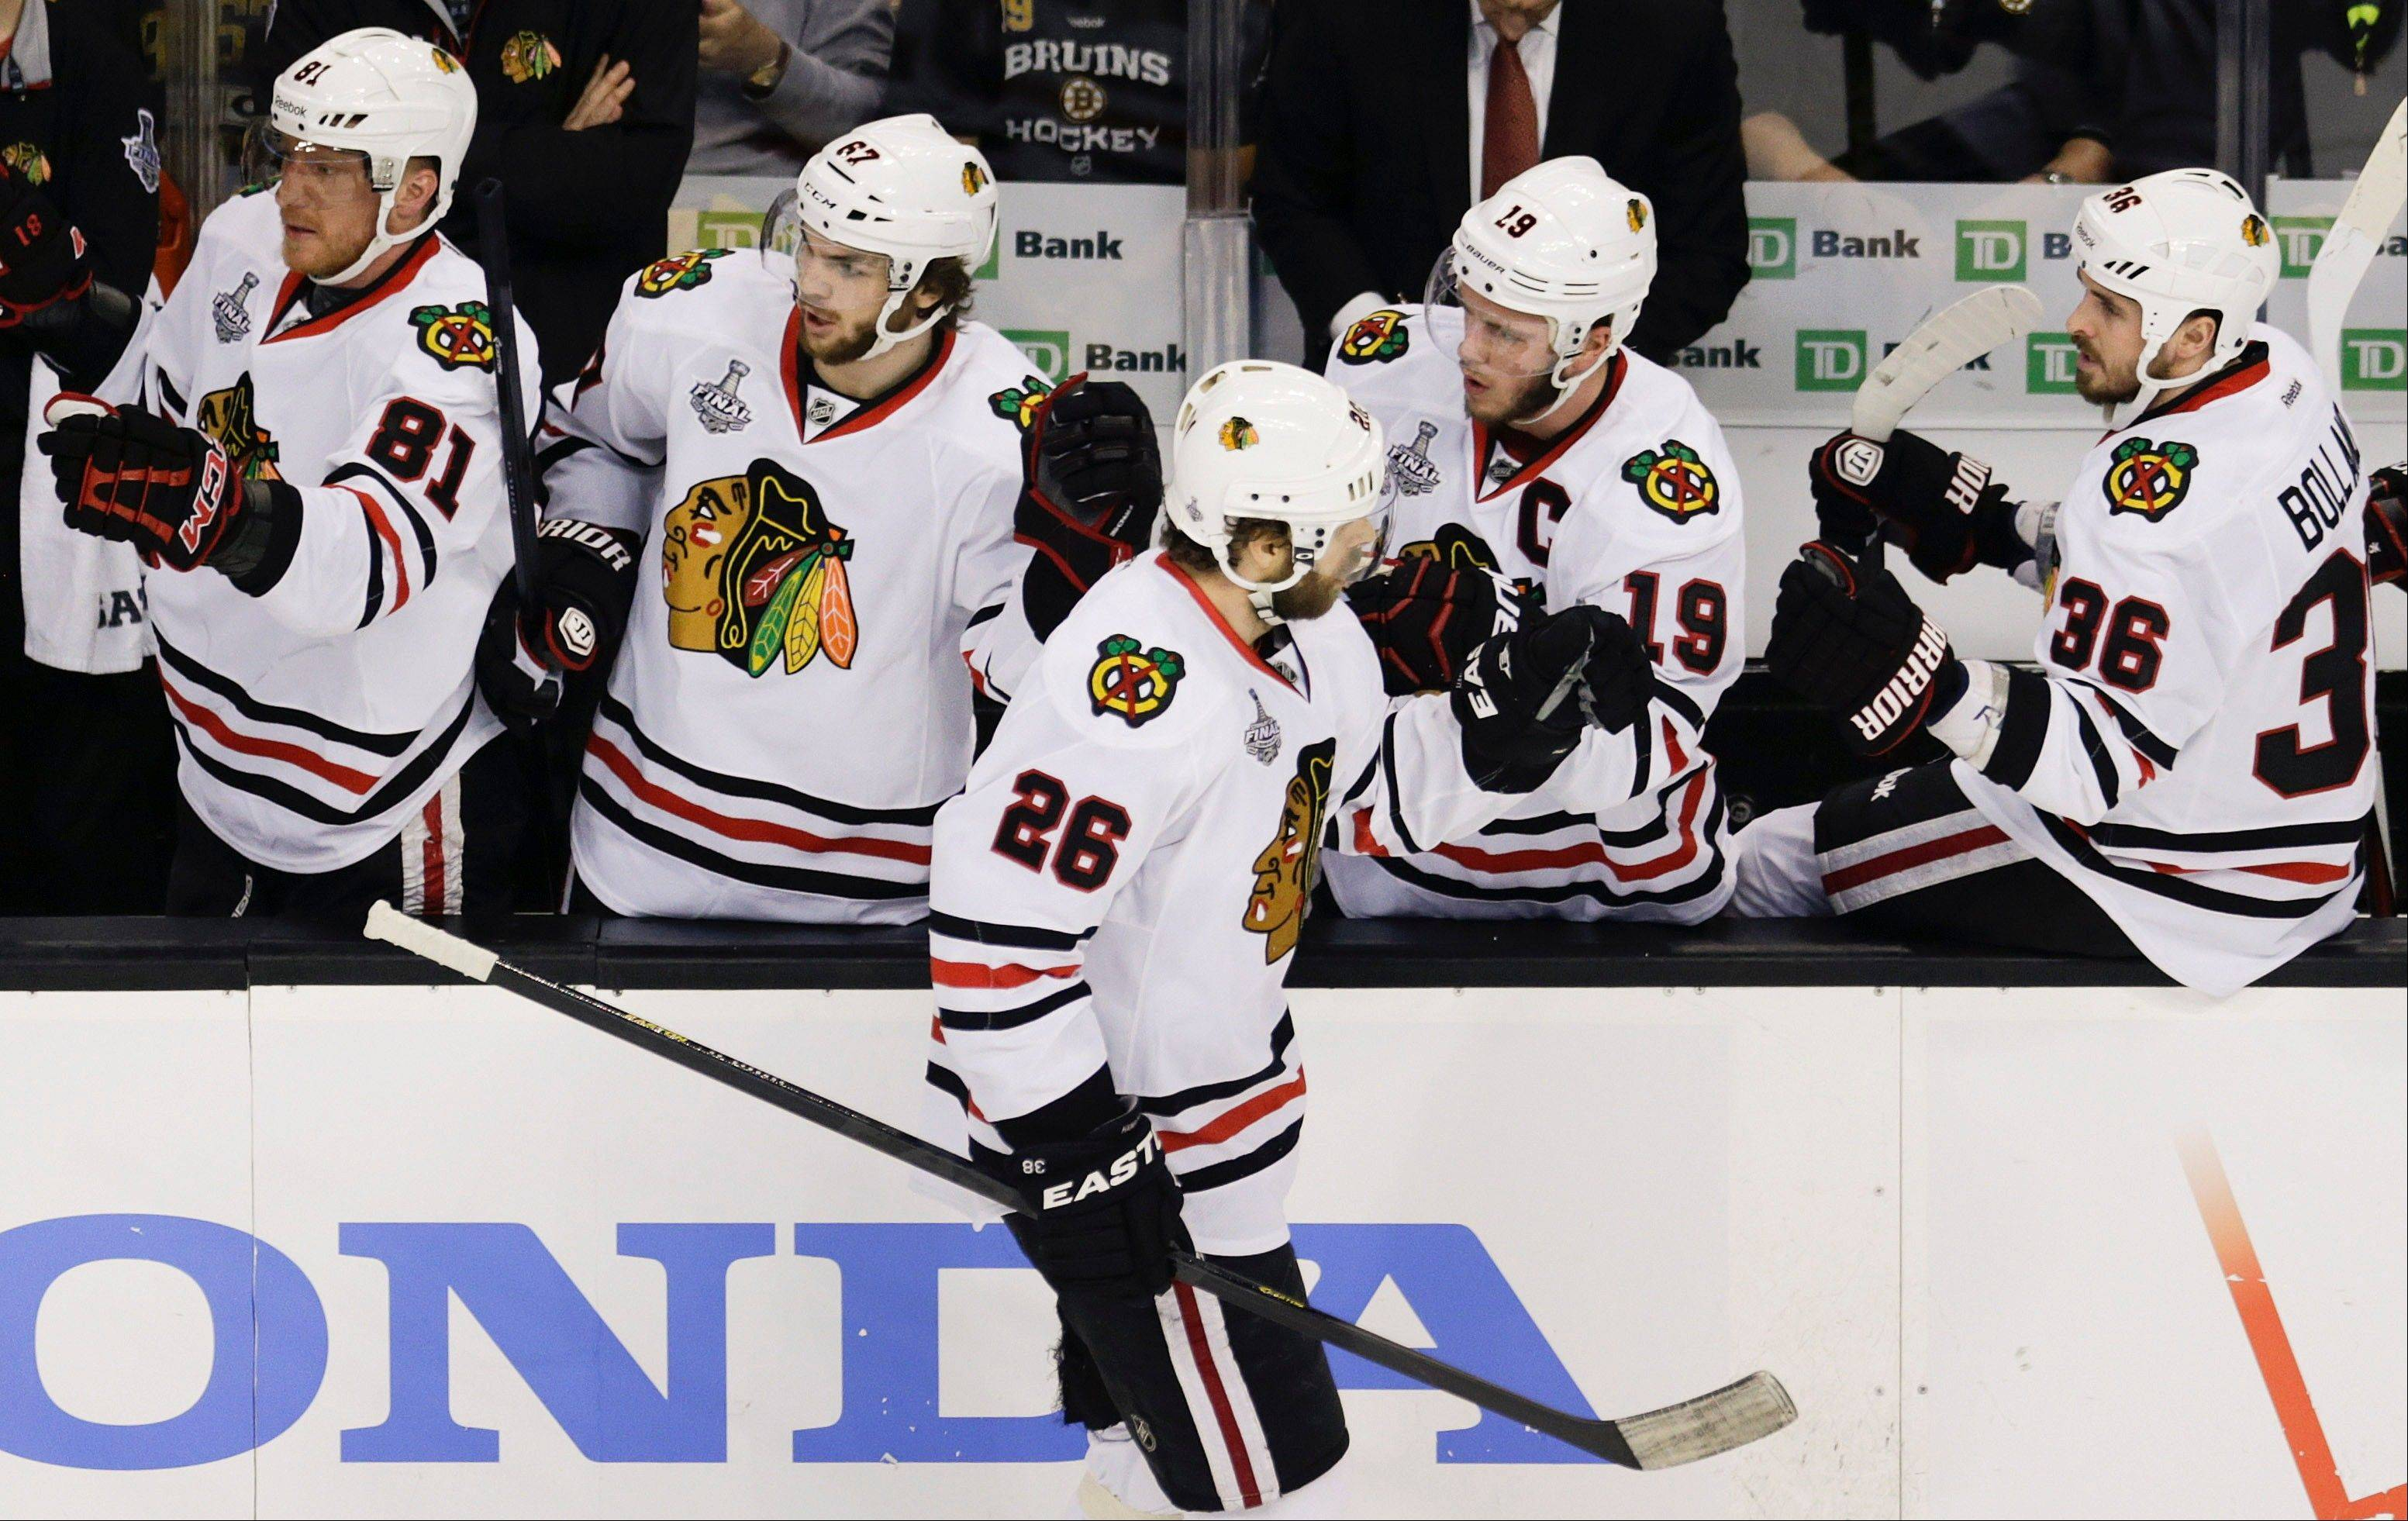 Chicago Blackhawks center Michal Handzus (26), of Slovakia, is congratulated by teammates on the bench after scoring against the Boston Bruins during the first period in Game 4 of the NHL hockey Stanley Cup Finals.